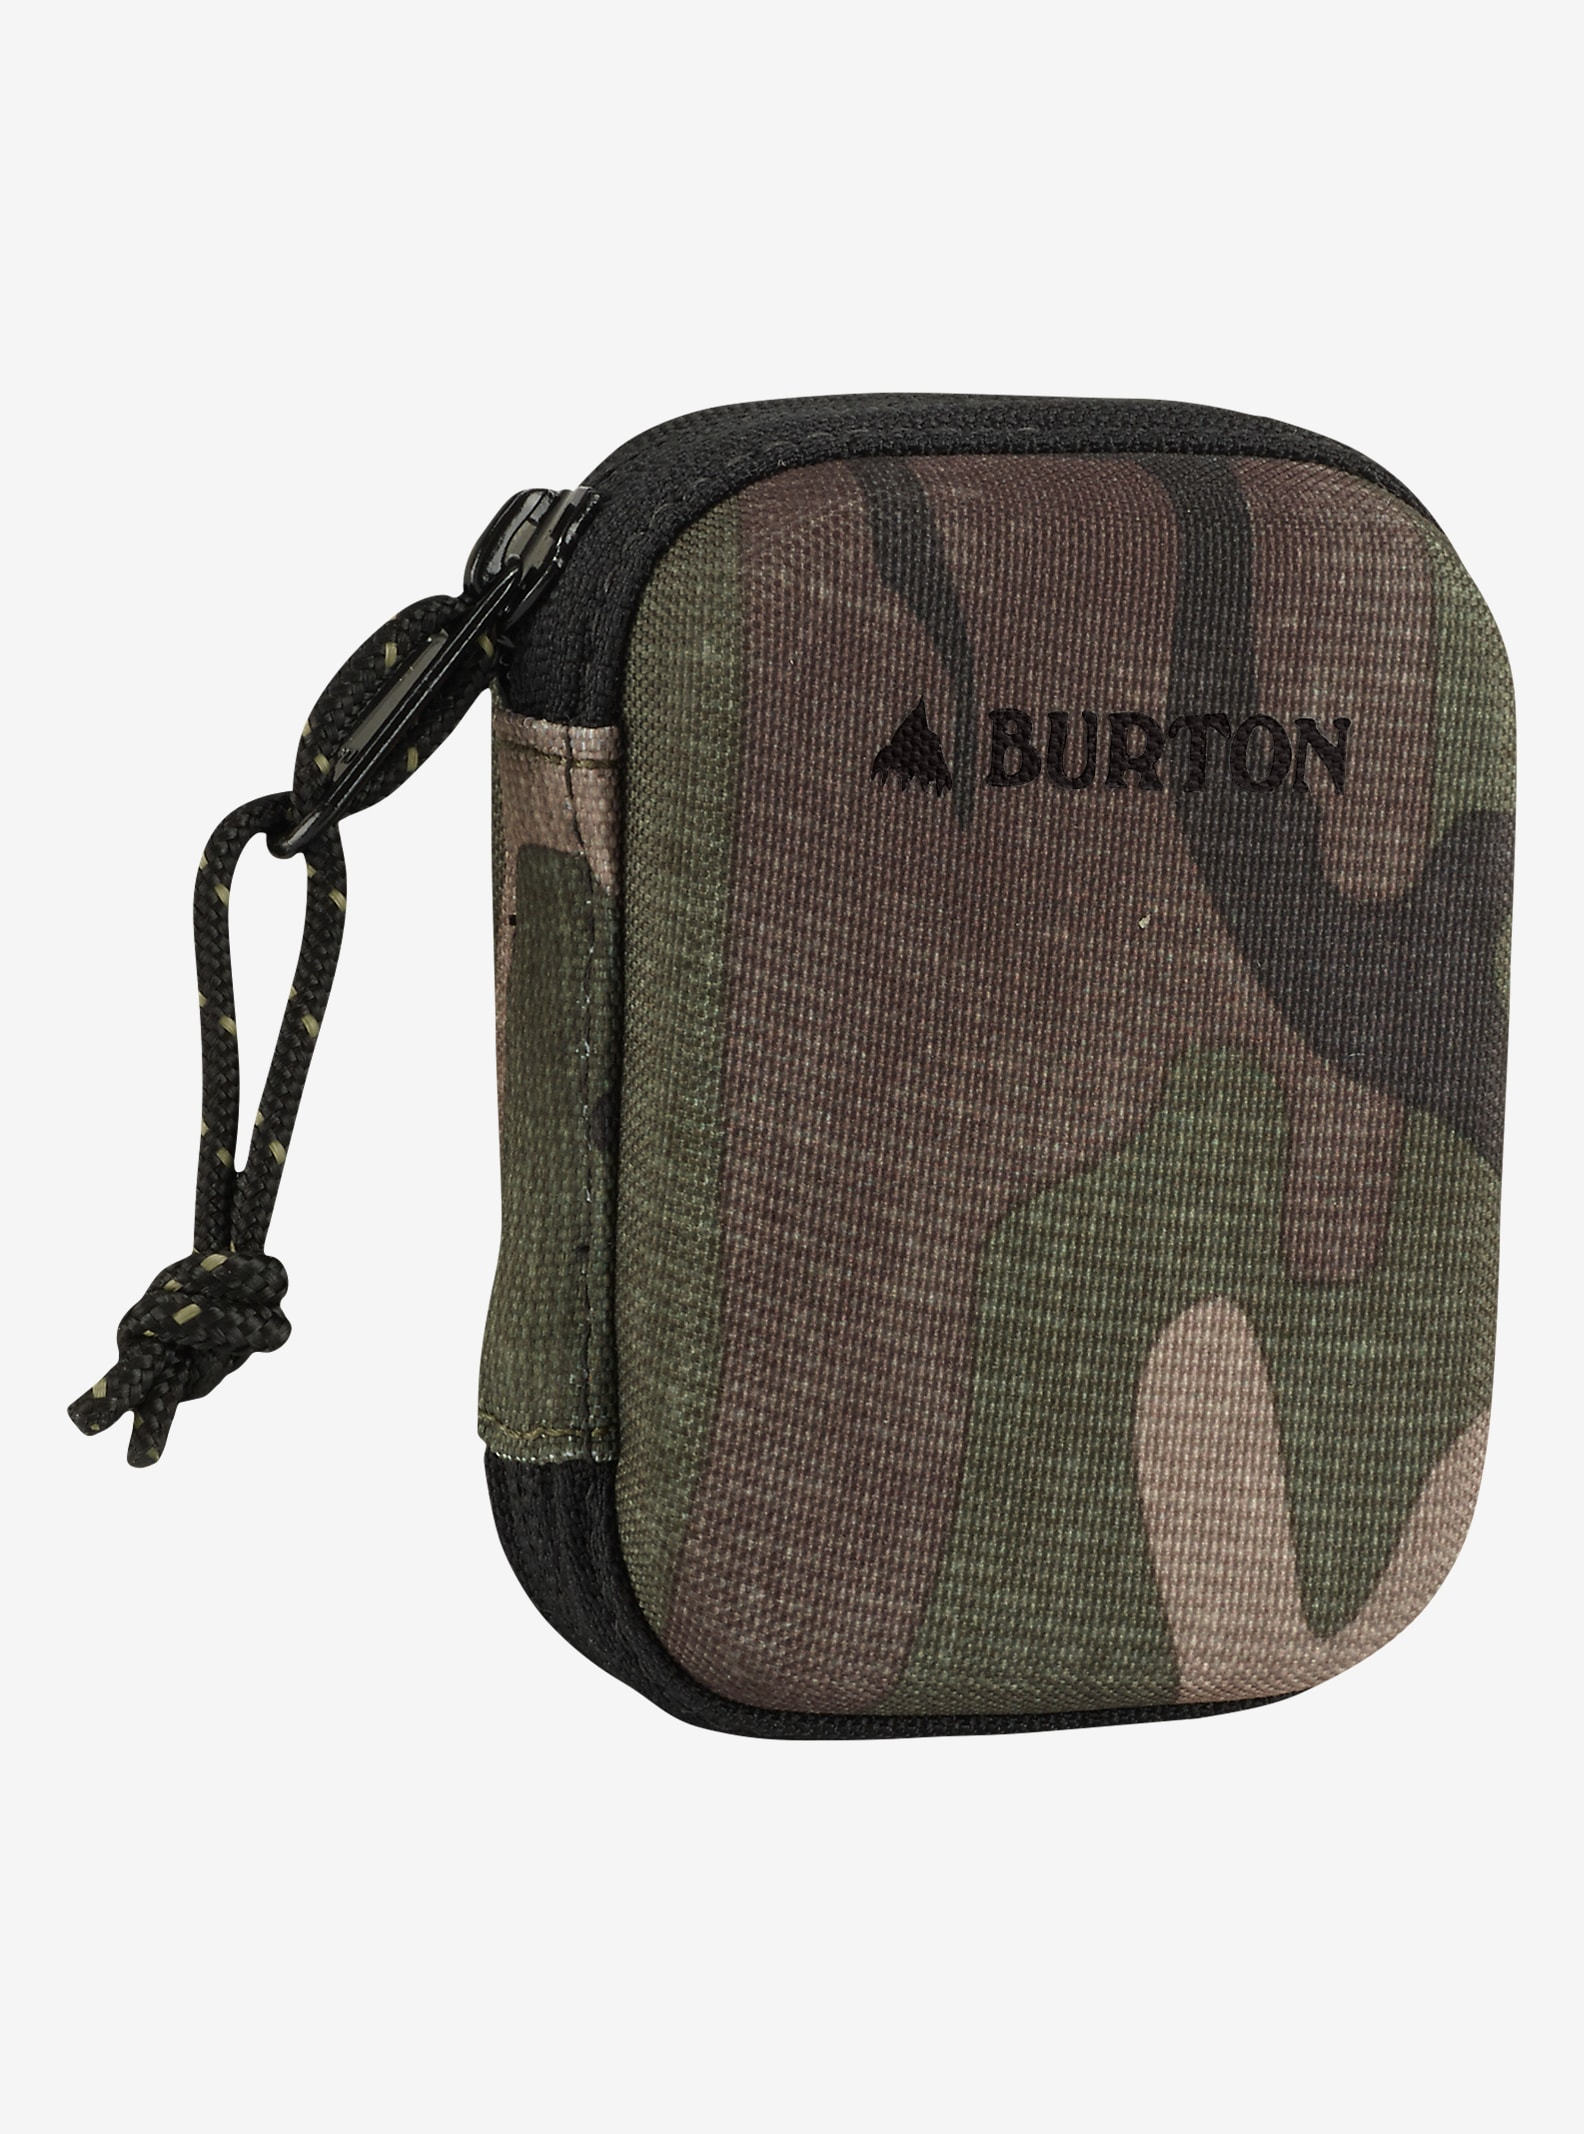 Burton The Kit shown in Bkamo Print